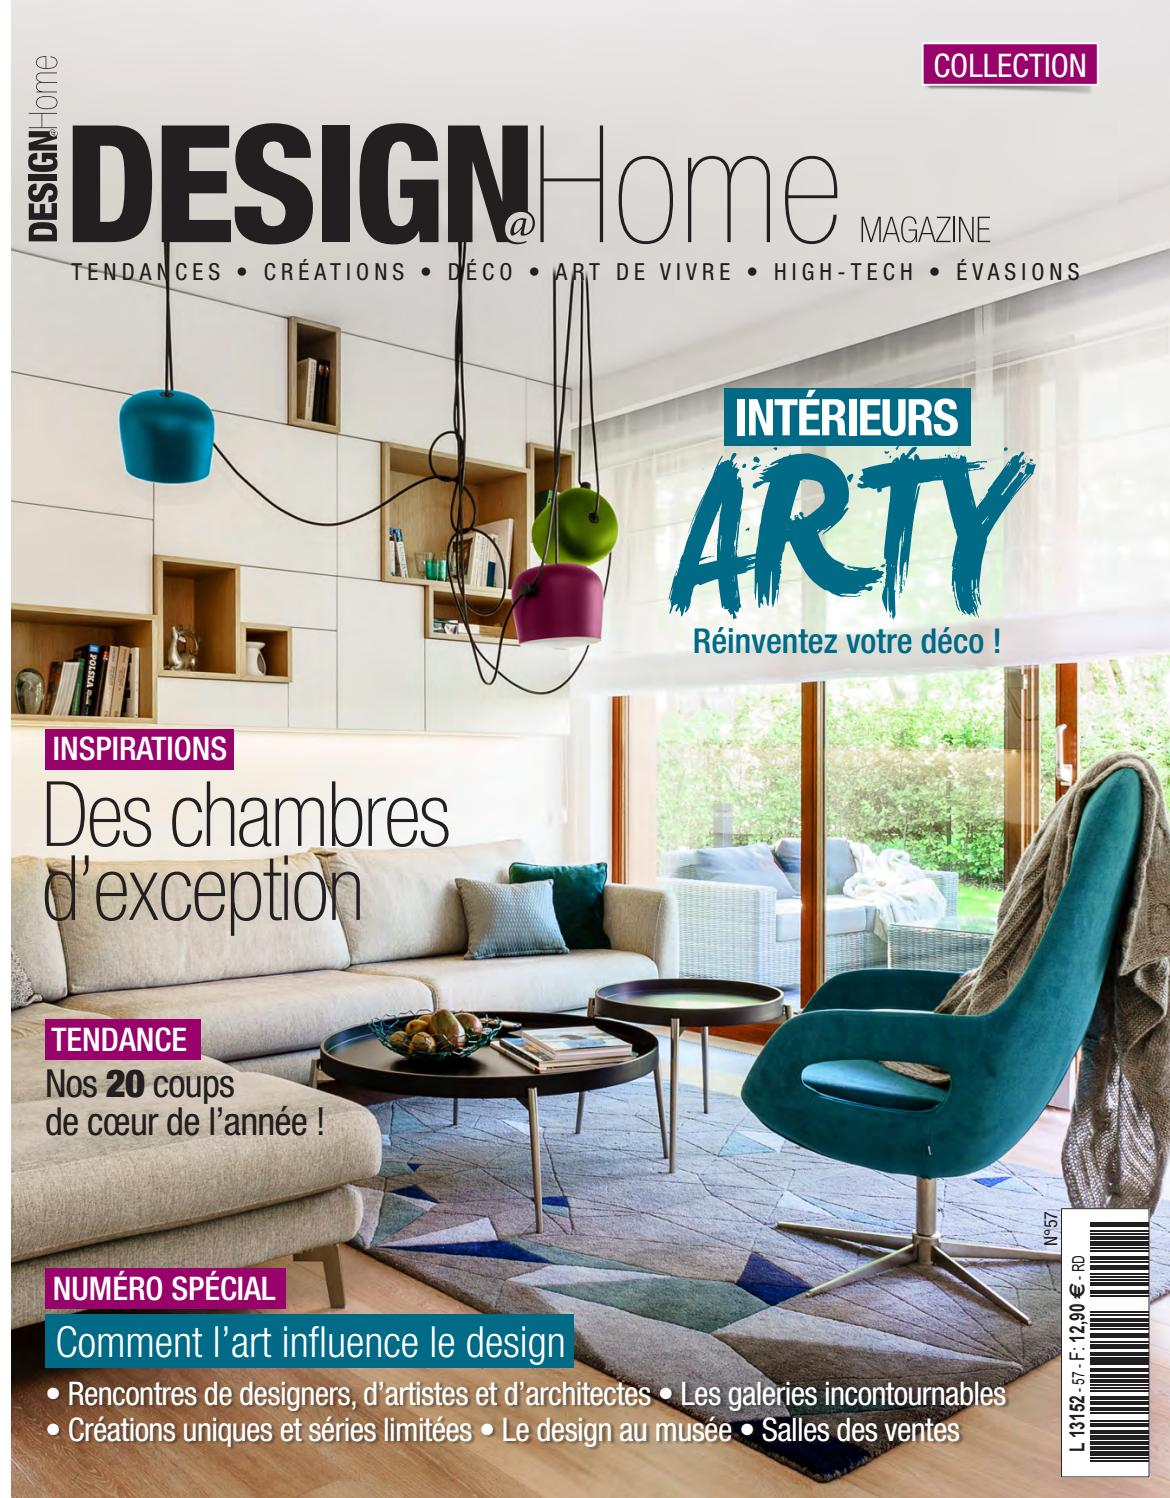 Design @ Home 18 by Beemedias - issuu